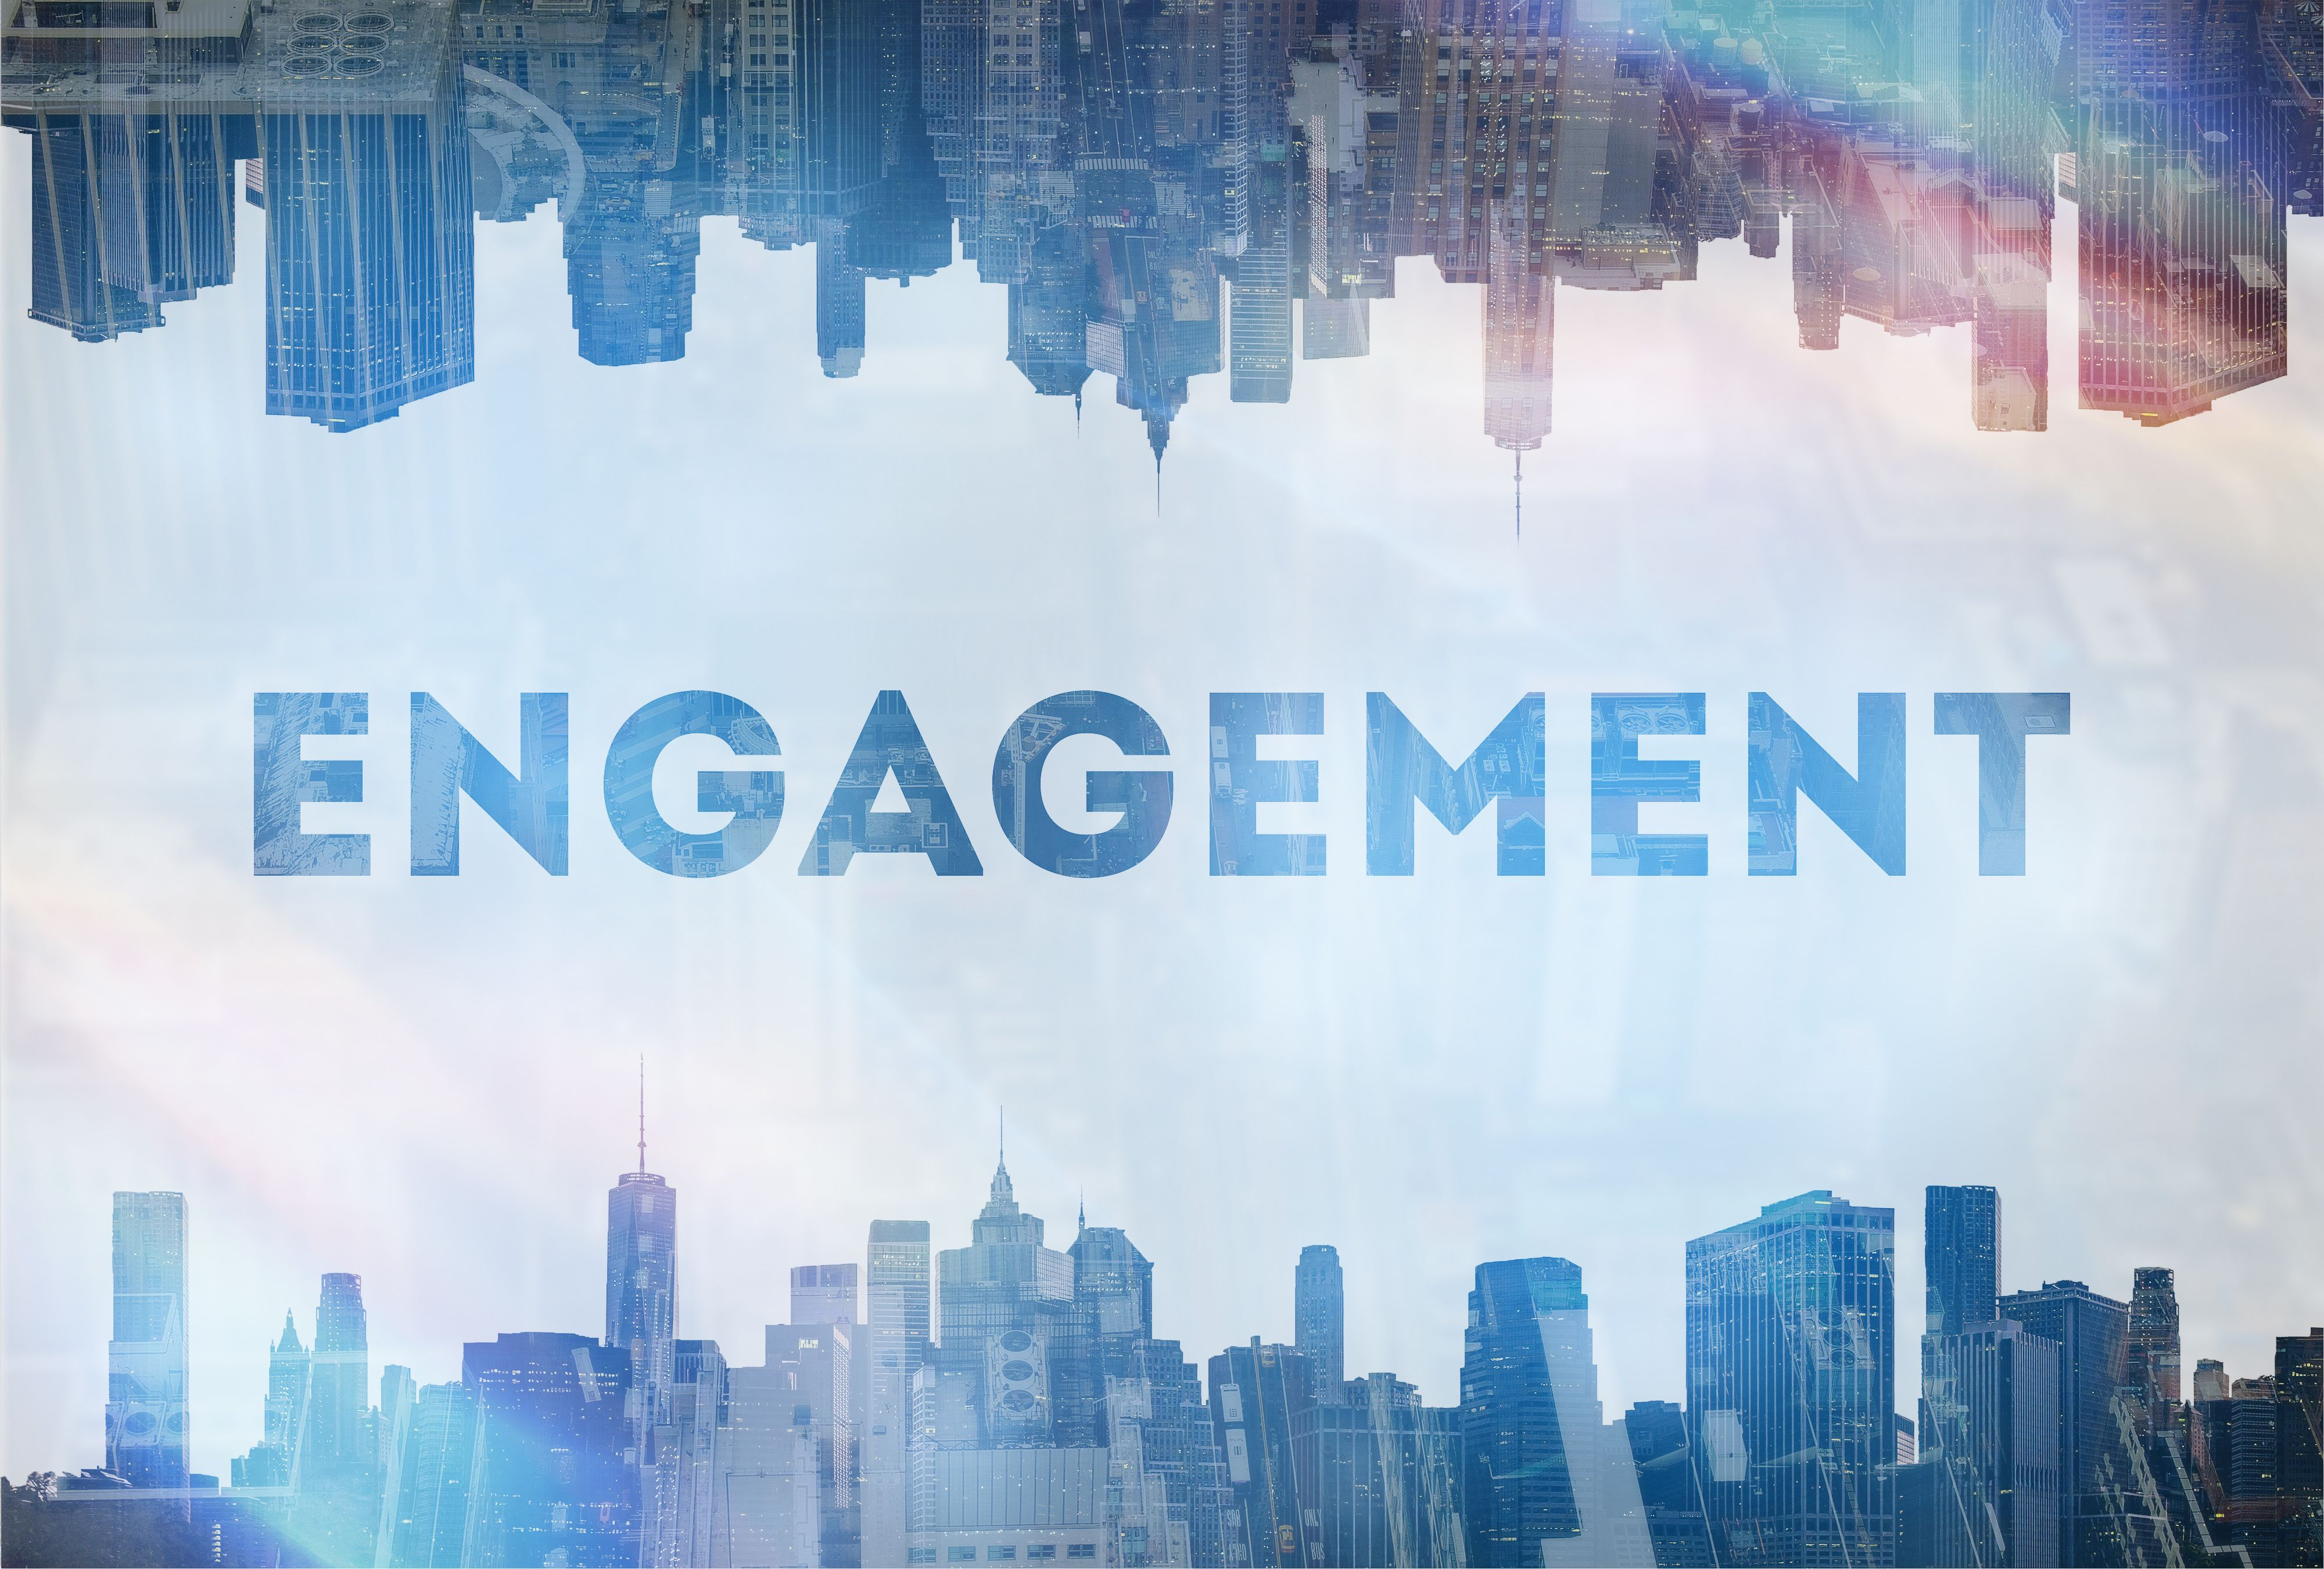 Employee engagement is key to business success